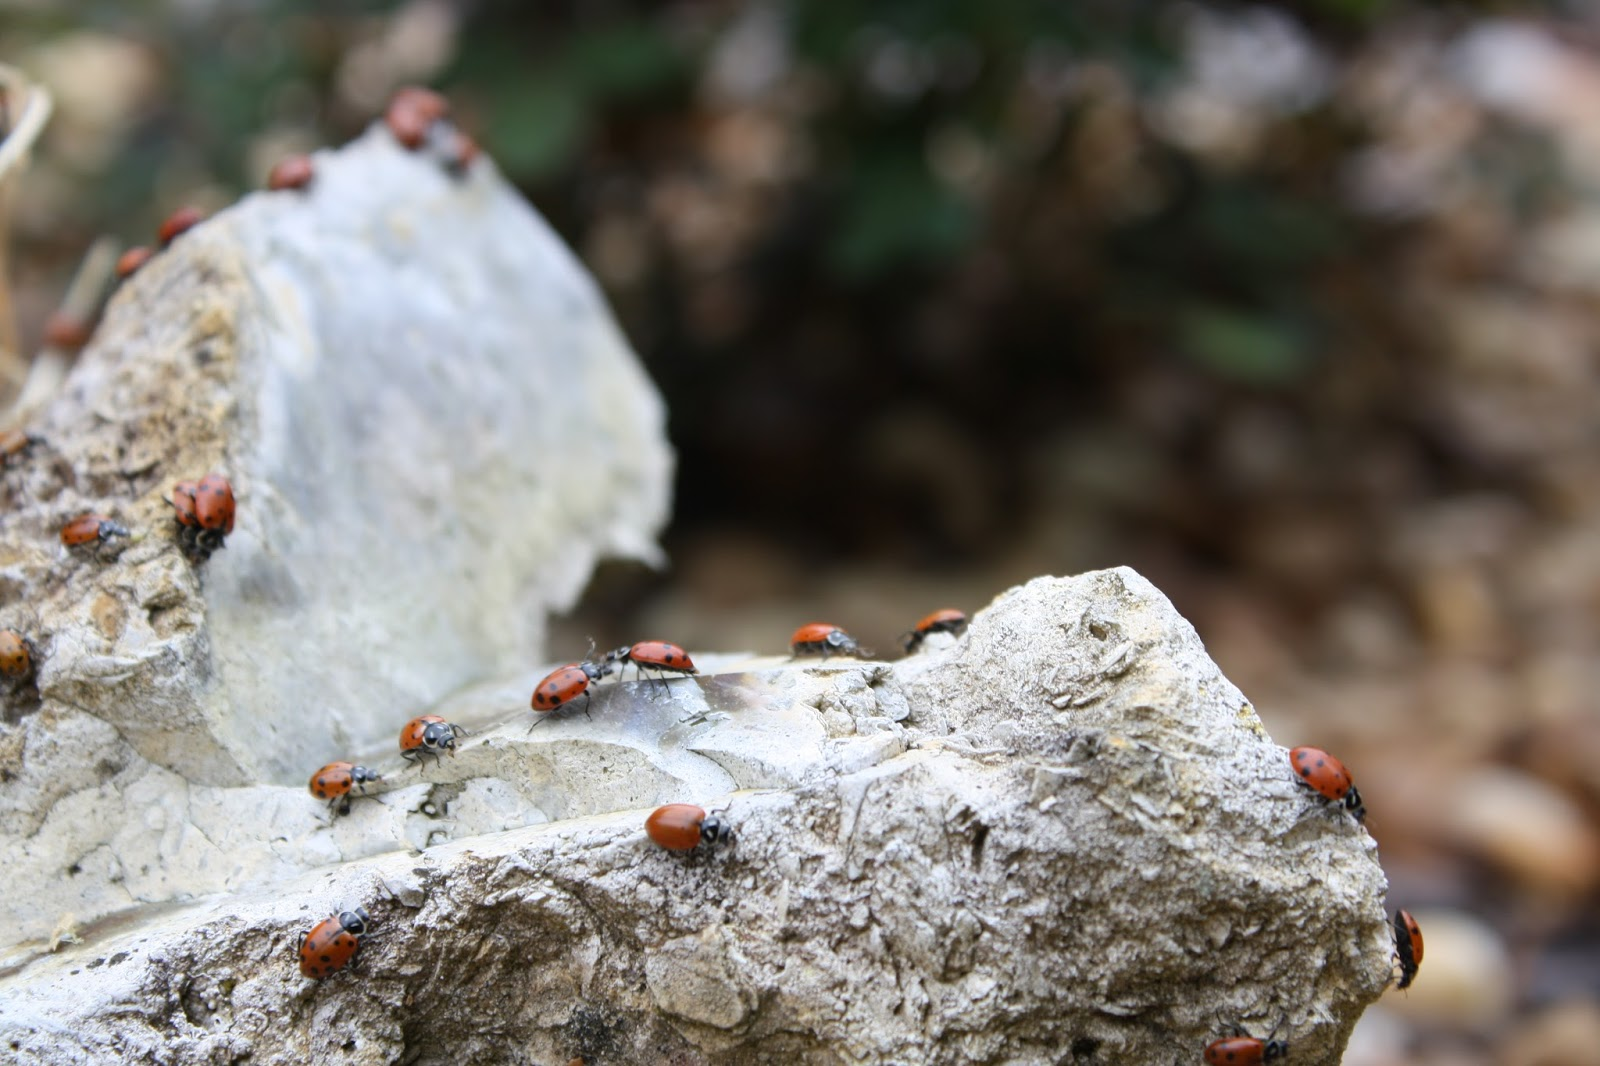 Ladybugs crawling on a rock